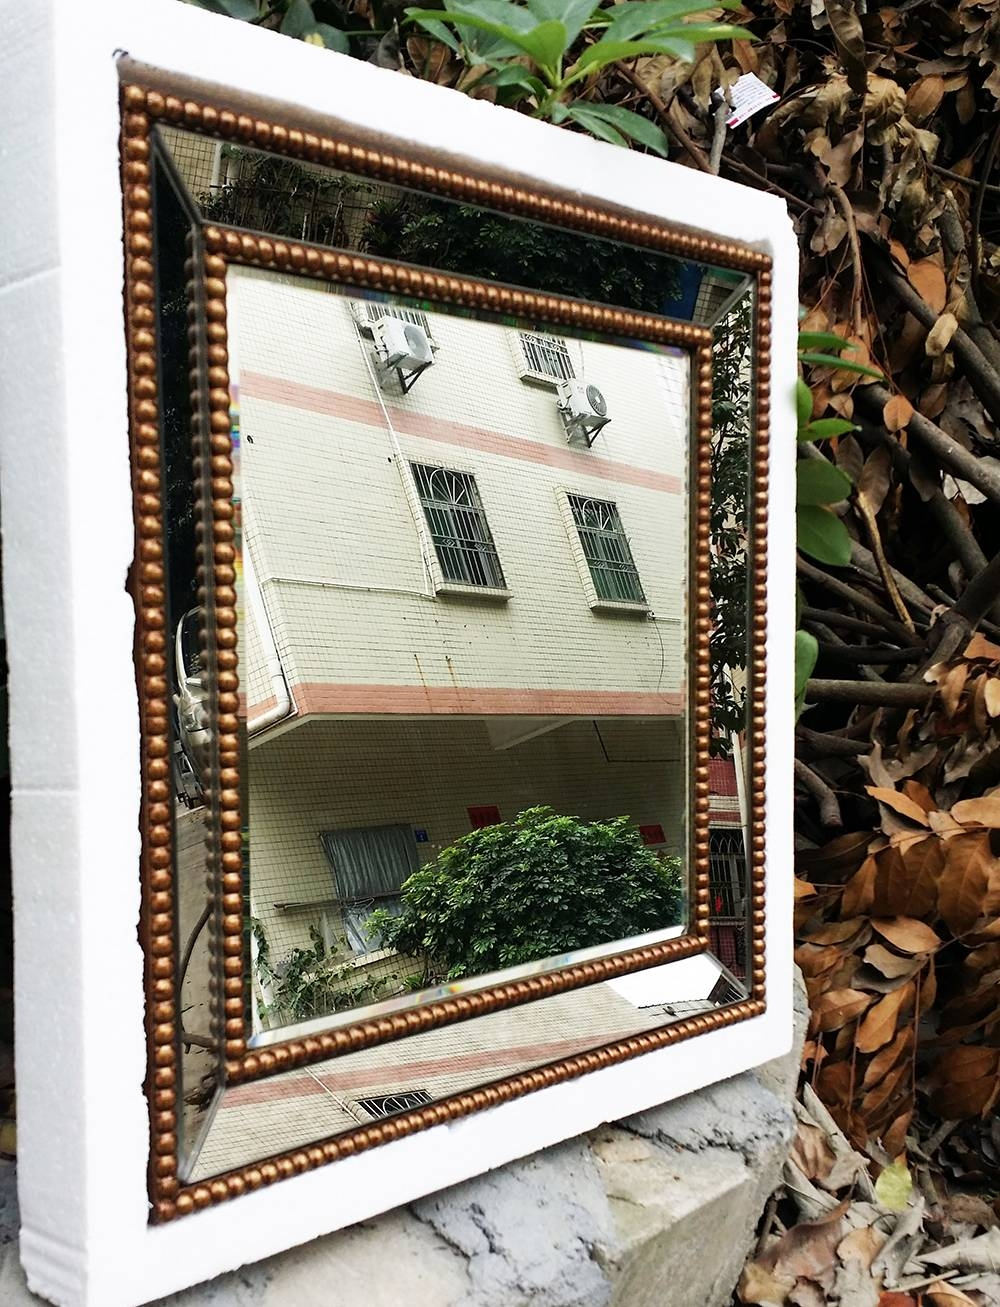 Mirrored Wall Decor Fretwork Square Wall Mirror Framed Wall Art With Regard To Current Fretwork Wall Art (View 16 of 25)